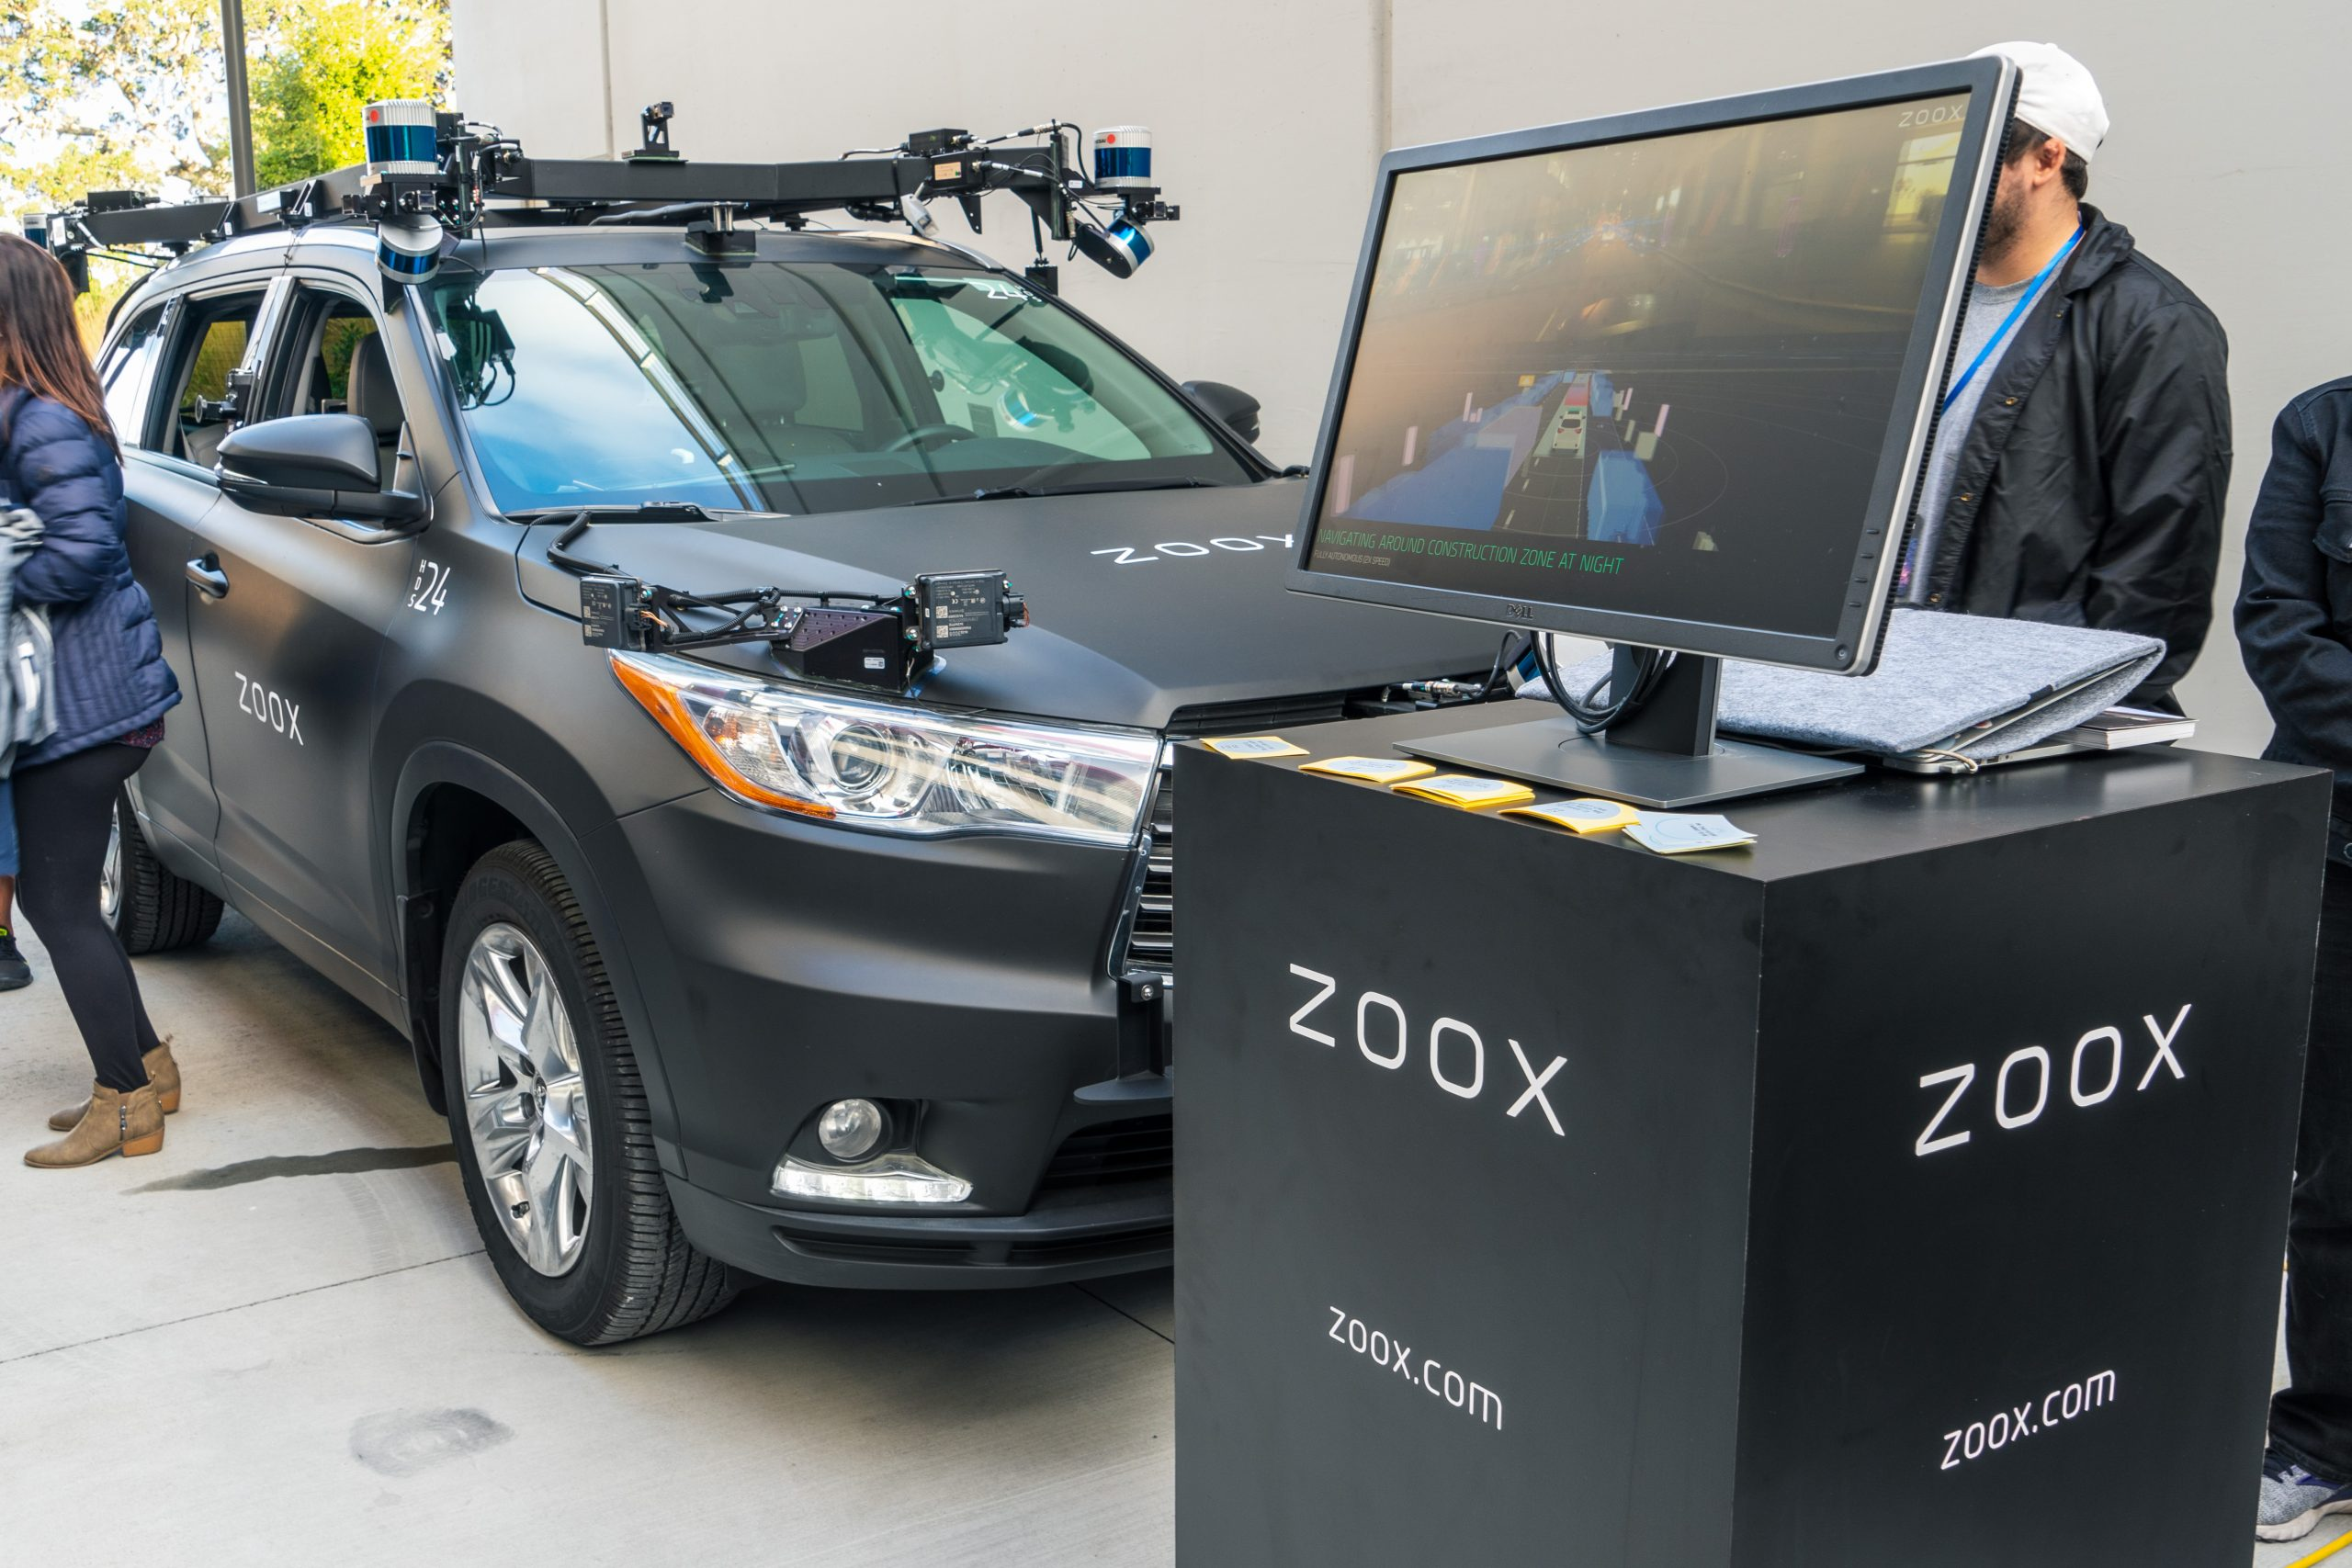 Amazon buys self-driving cars startup Zoox for $1.2 billion